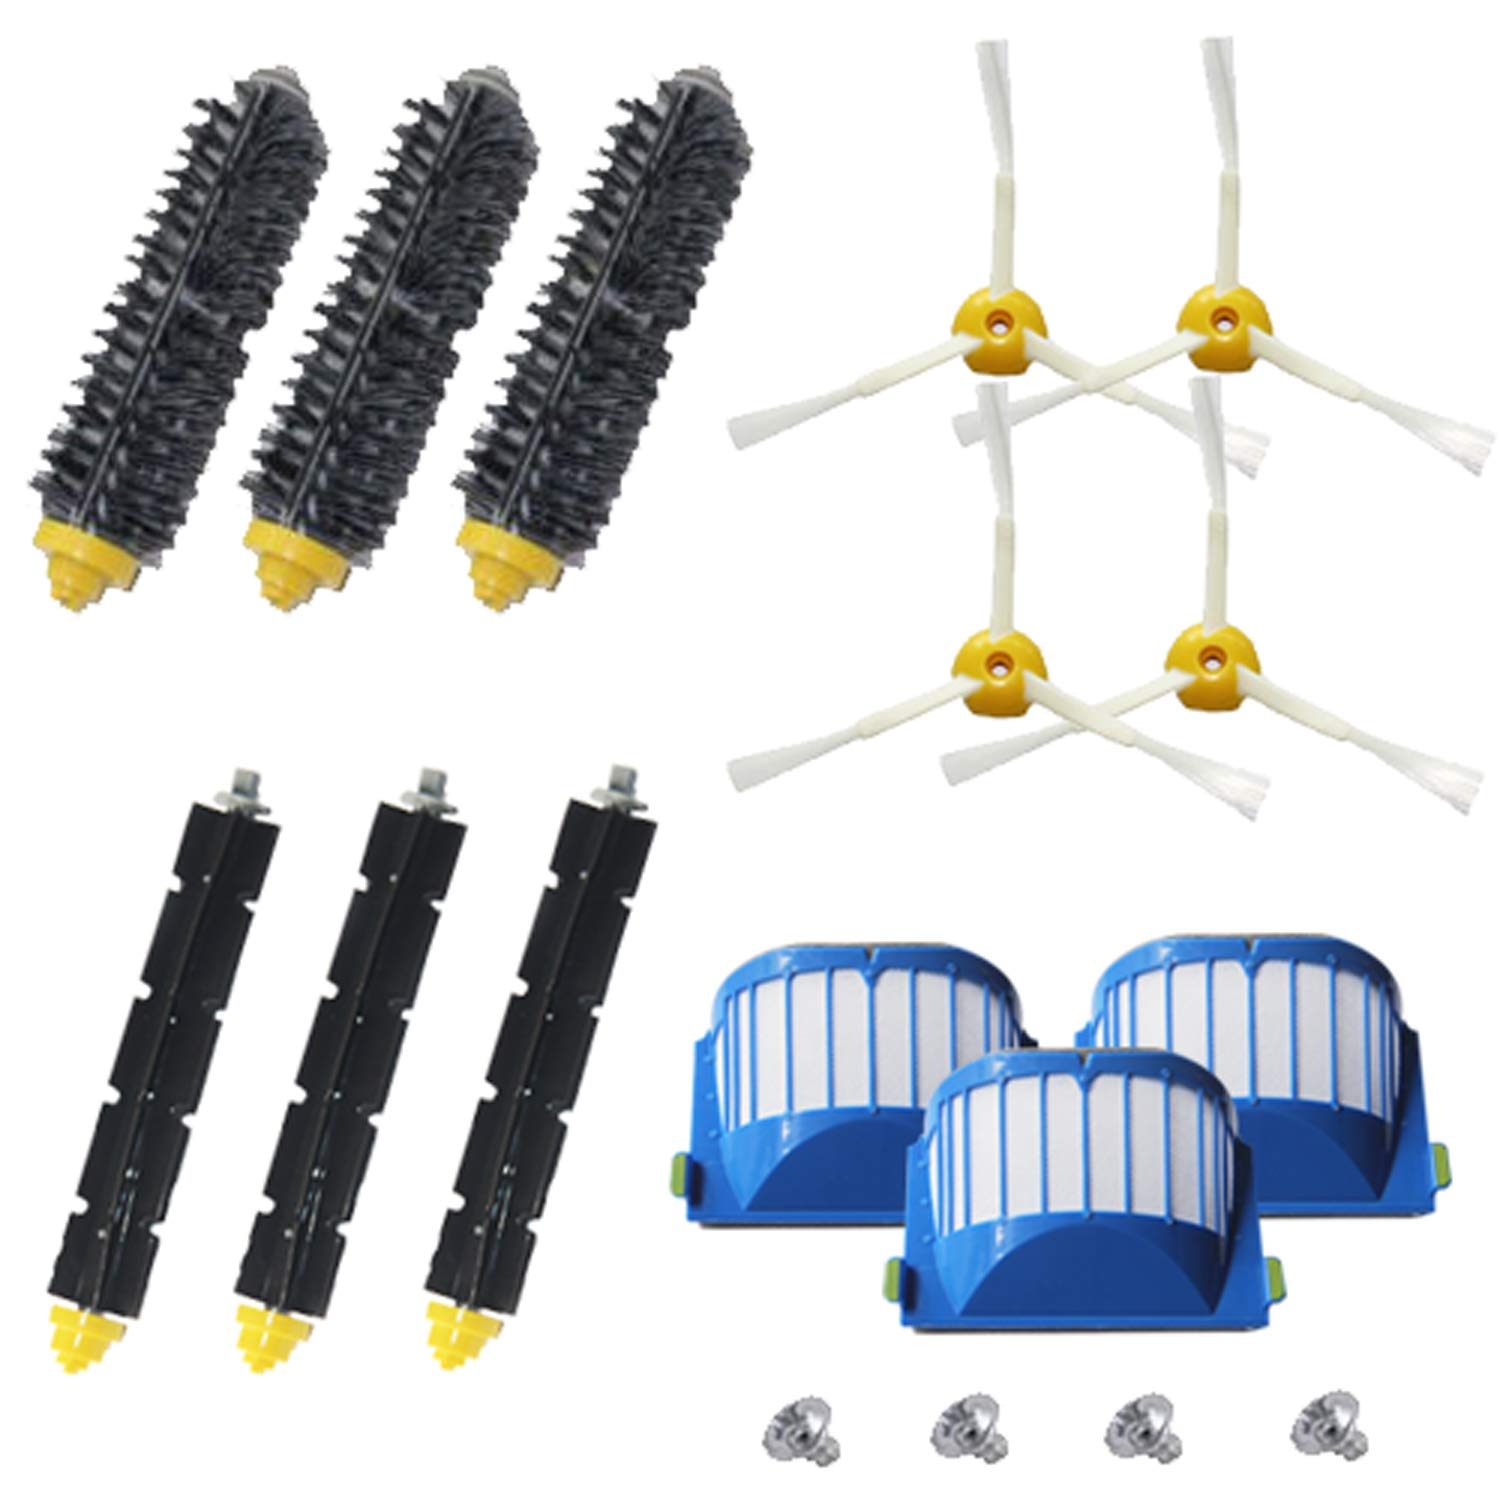 Amyehouse Accessory Replacement Kit of Bristle & Flexible Beater Brushes & 3-Armed Side Brushes & Aero Vac Filters for iRobot Roomba 600 Series 614 620 630 650 660 671 680 690 Vacuum Parts by Amyehouse